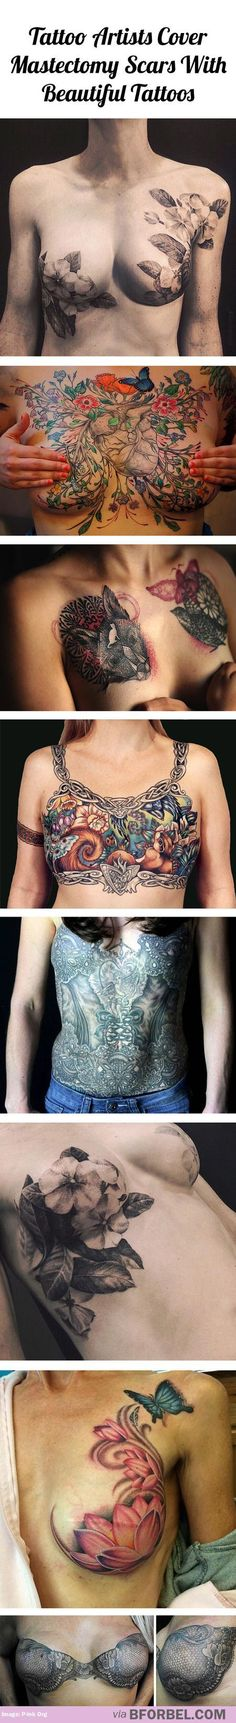 Tattoo artists cover mastectomy scars with beautiful tattoos